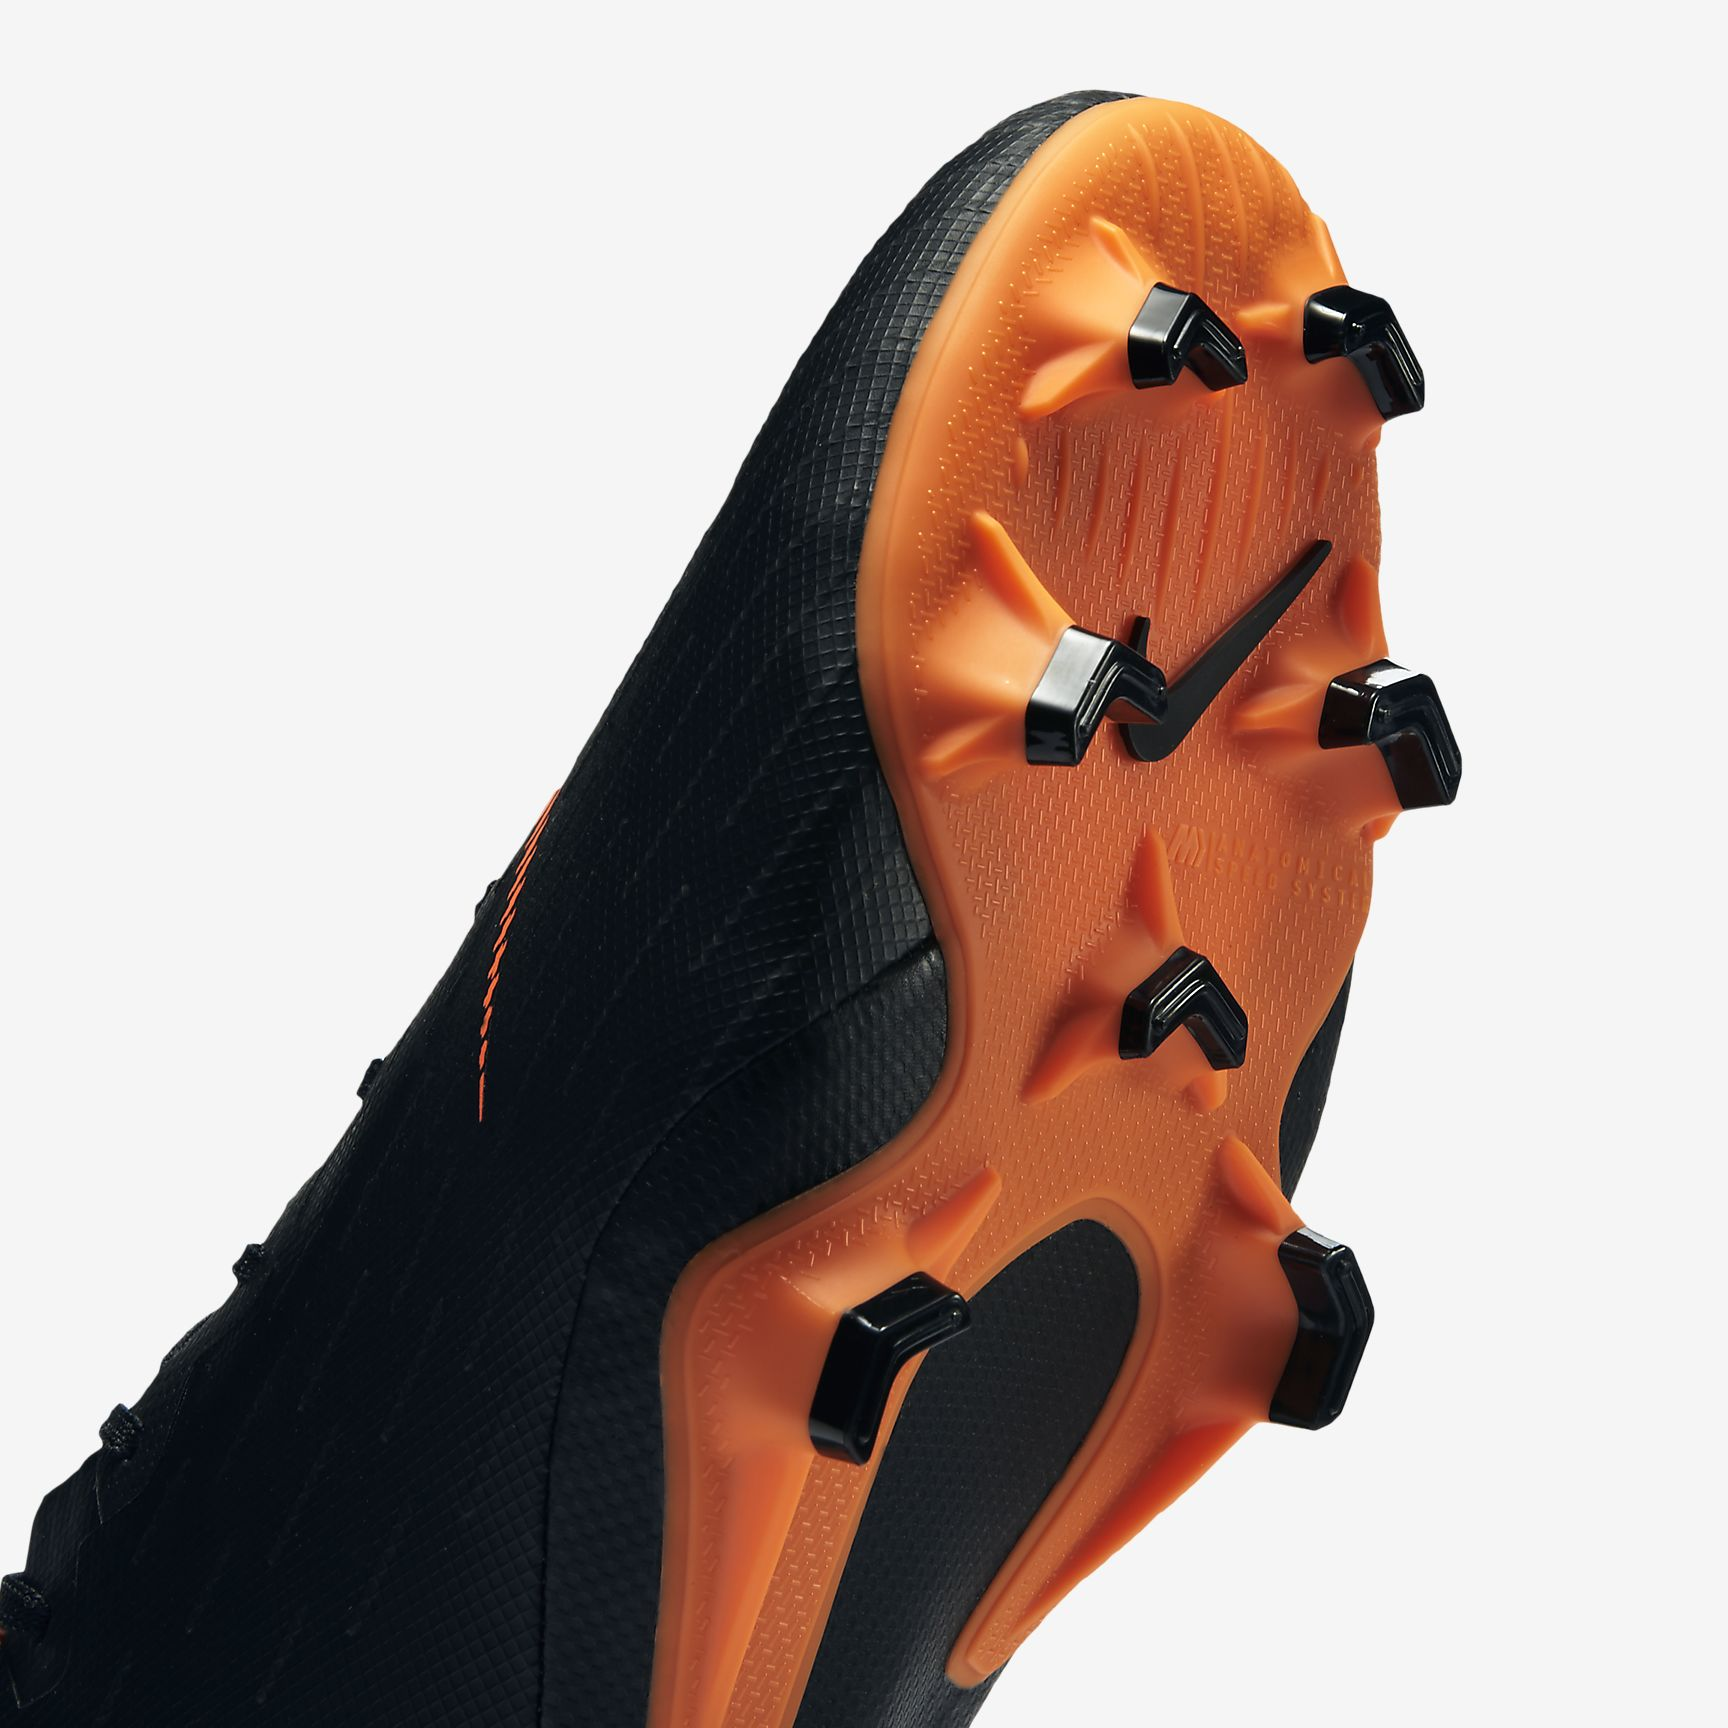 mercurial-vapor-xii-pro-firm-ground-soccer-cleat-N3LOPg-4.jpg